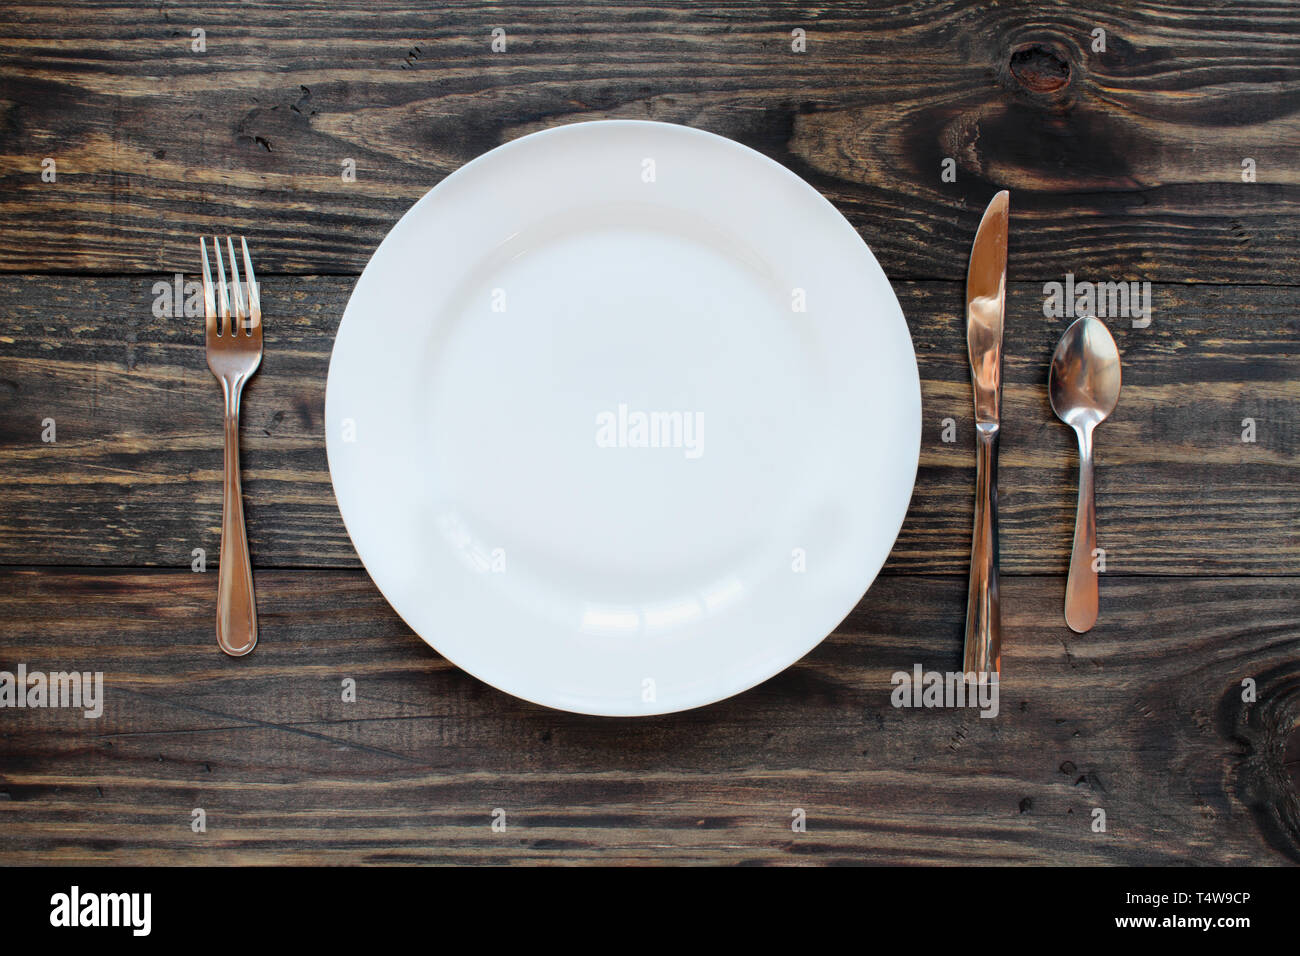 Empty White Dinner Plate Over A Rustic Wooden Table Background With Fork Knife And Spoon Top View Stock Photo Alamy